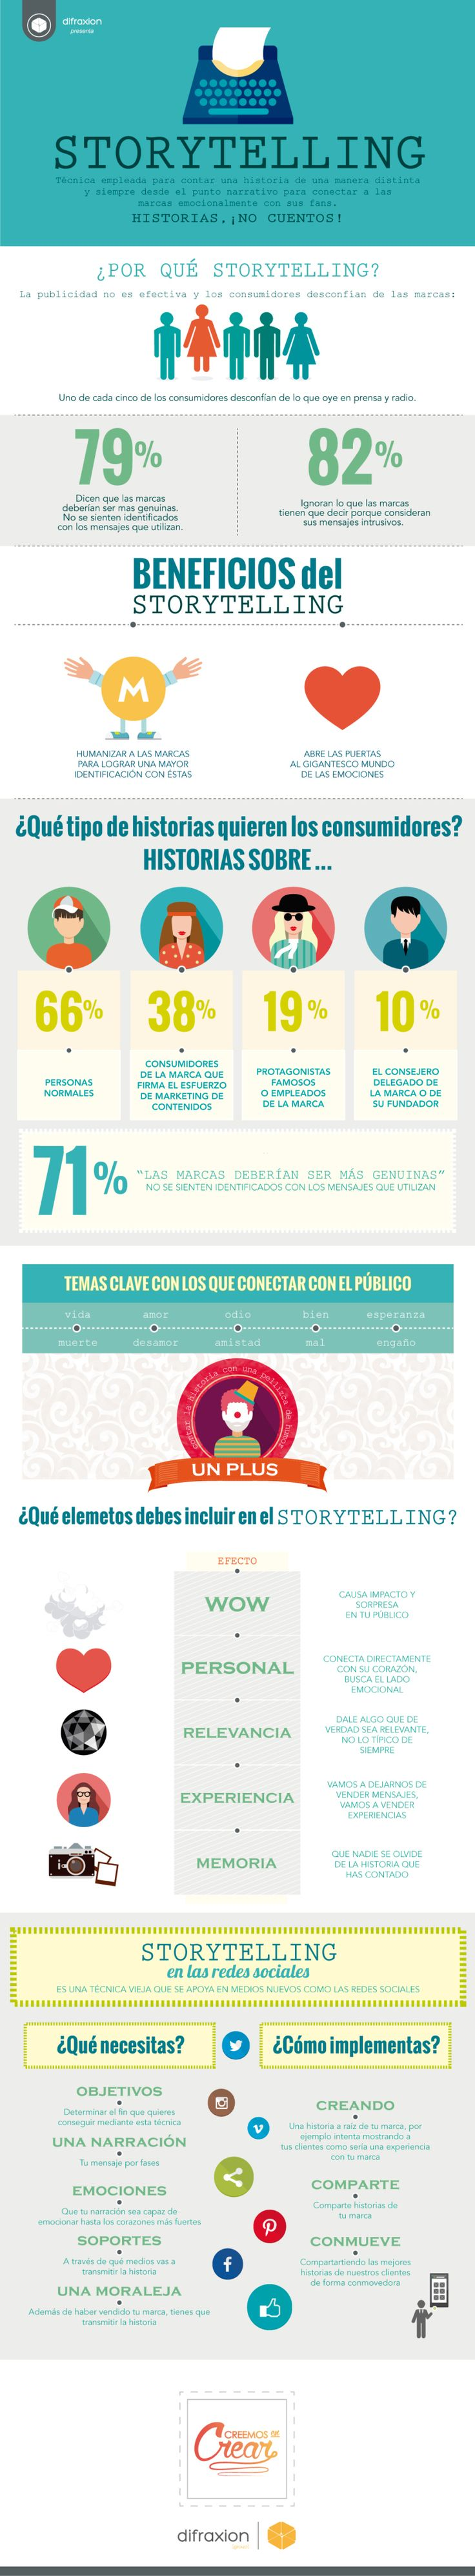 Storytelling: todo lo que debes saber #infografia #infographic #marketing